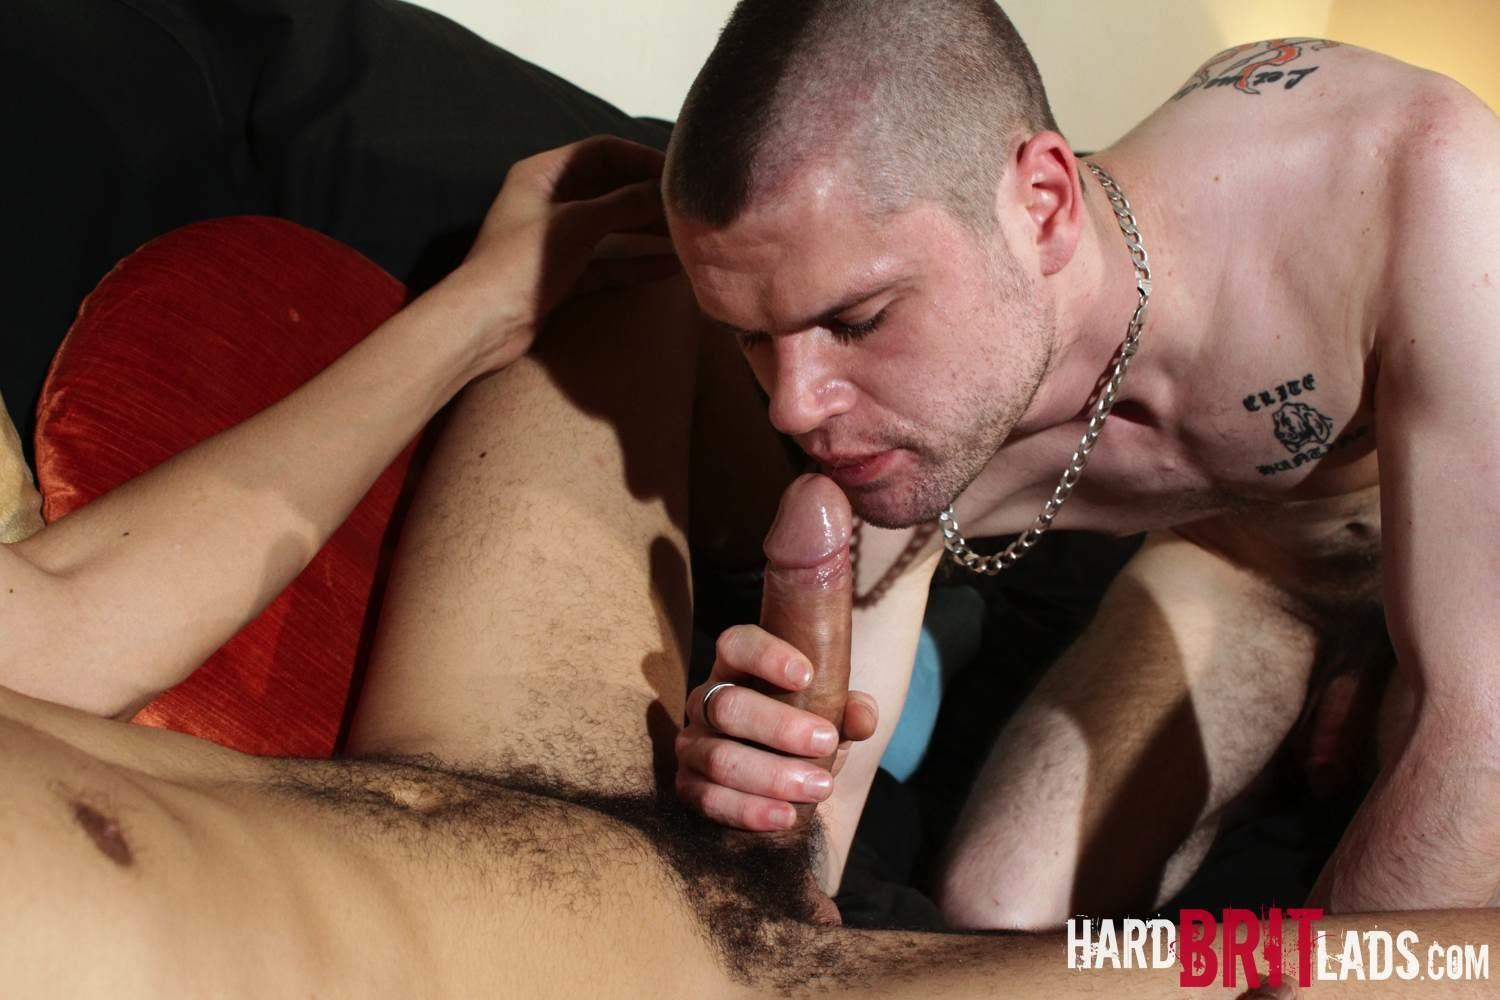 Hard Brit Lads Shaun Jones and Jay T Bisexual Skinhead Sucking First Big Cock Amateur Gay Porn 11 Hung Amateur Bisexual British Skinhead Sucks His First Cock Ever